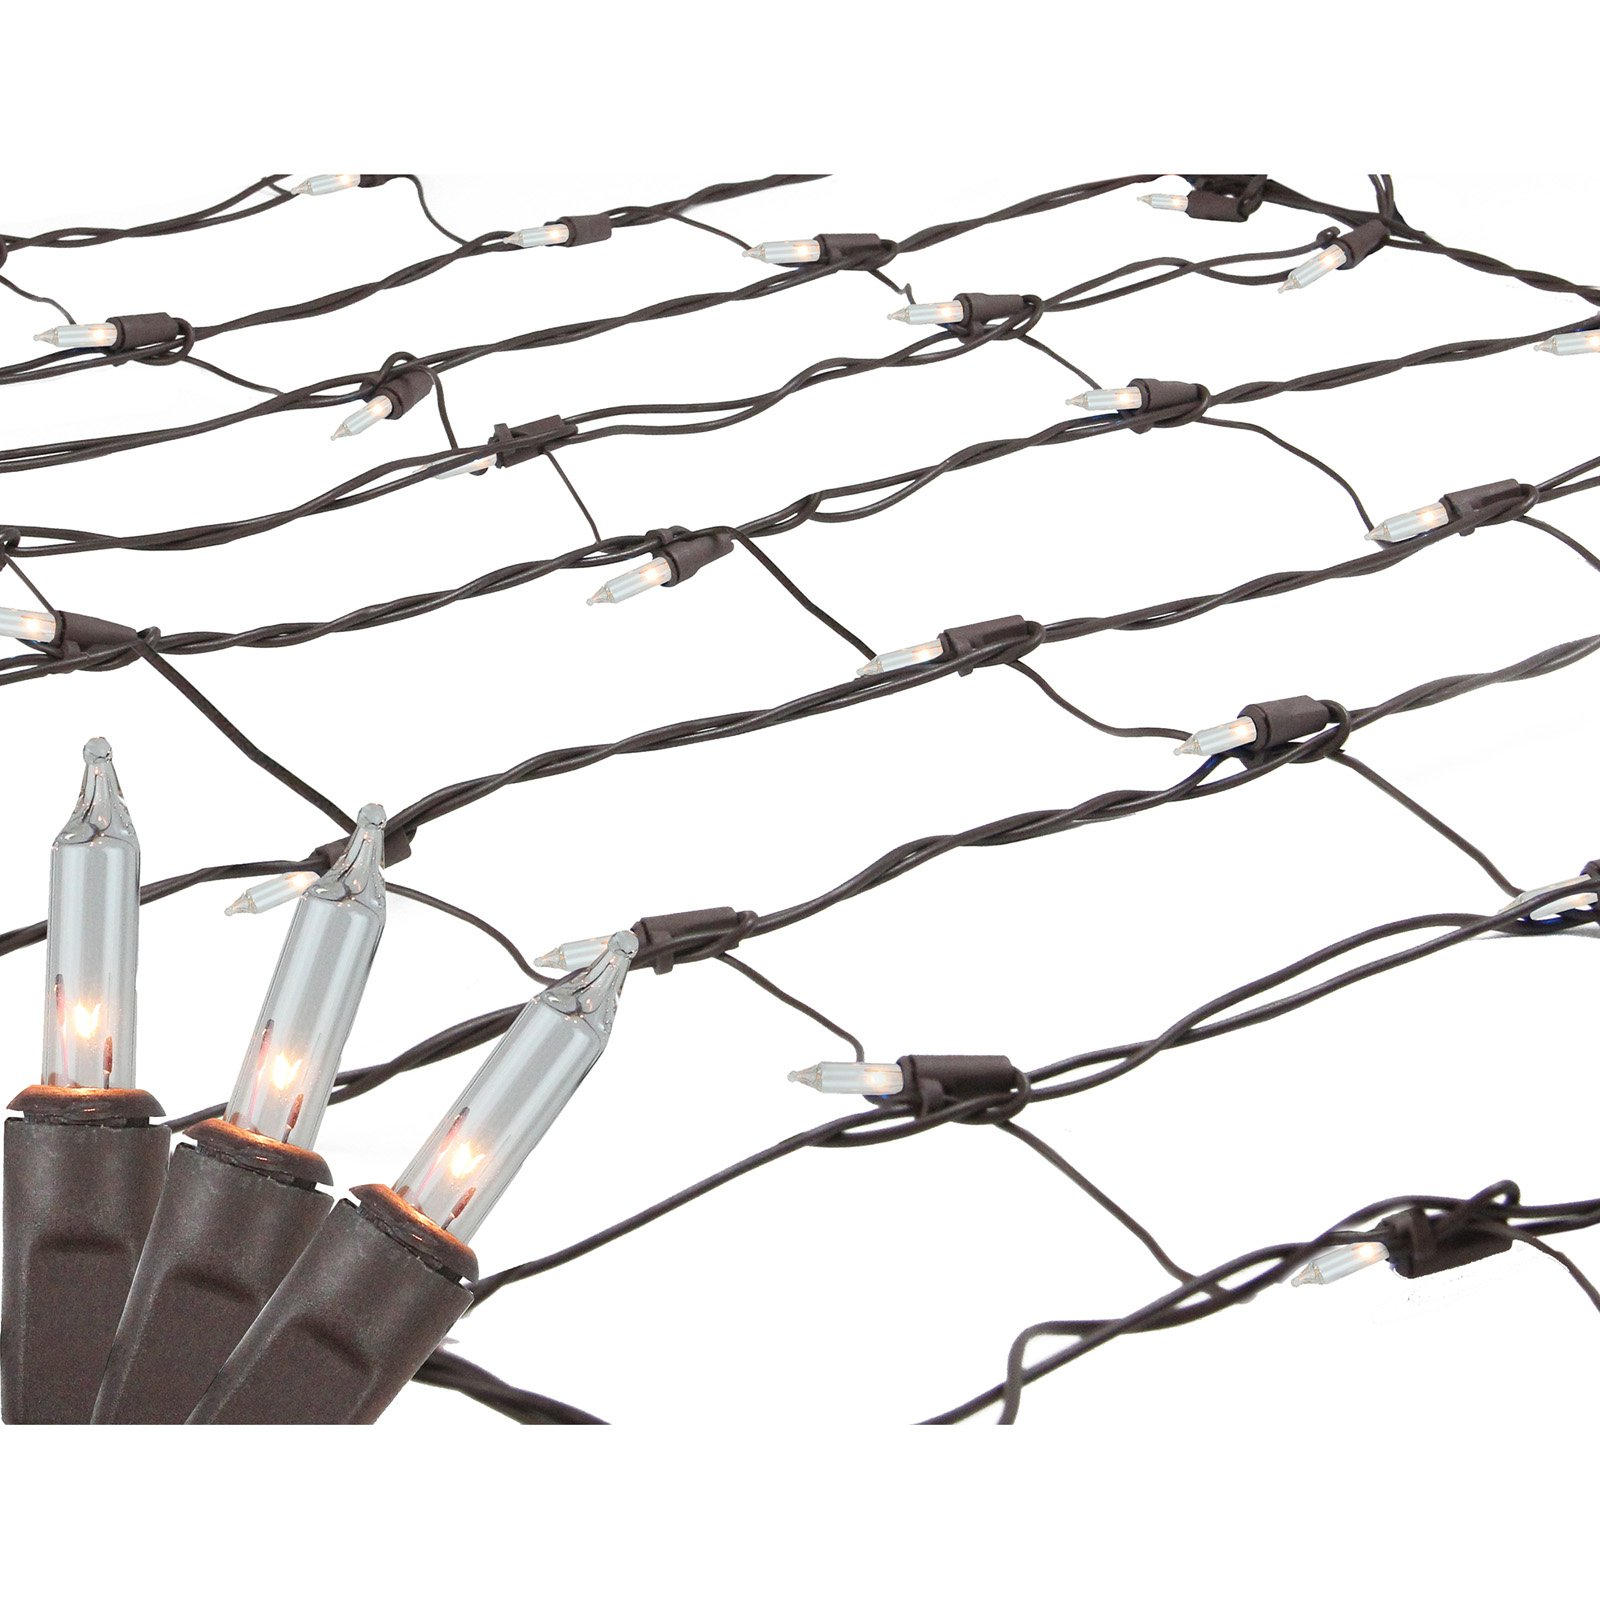 Northlight 150 ct. Mini Net Style Tree Trunk Wrap Clear Lights with Brown Wire